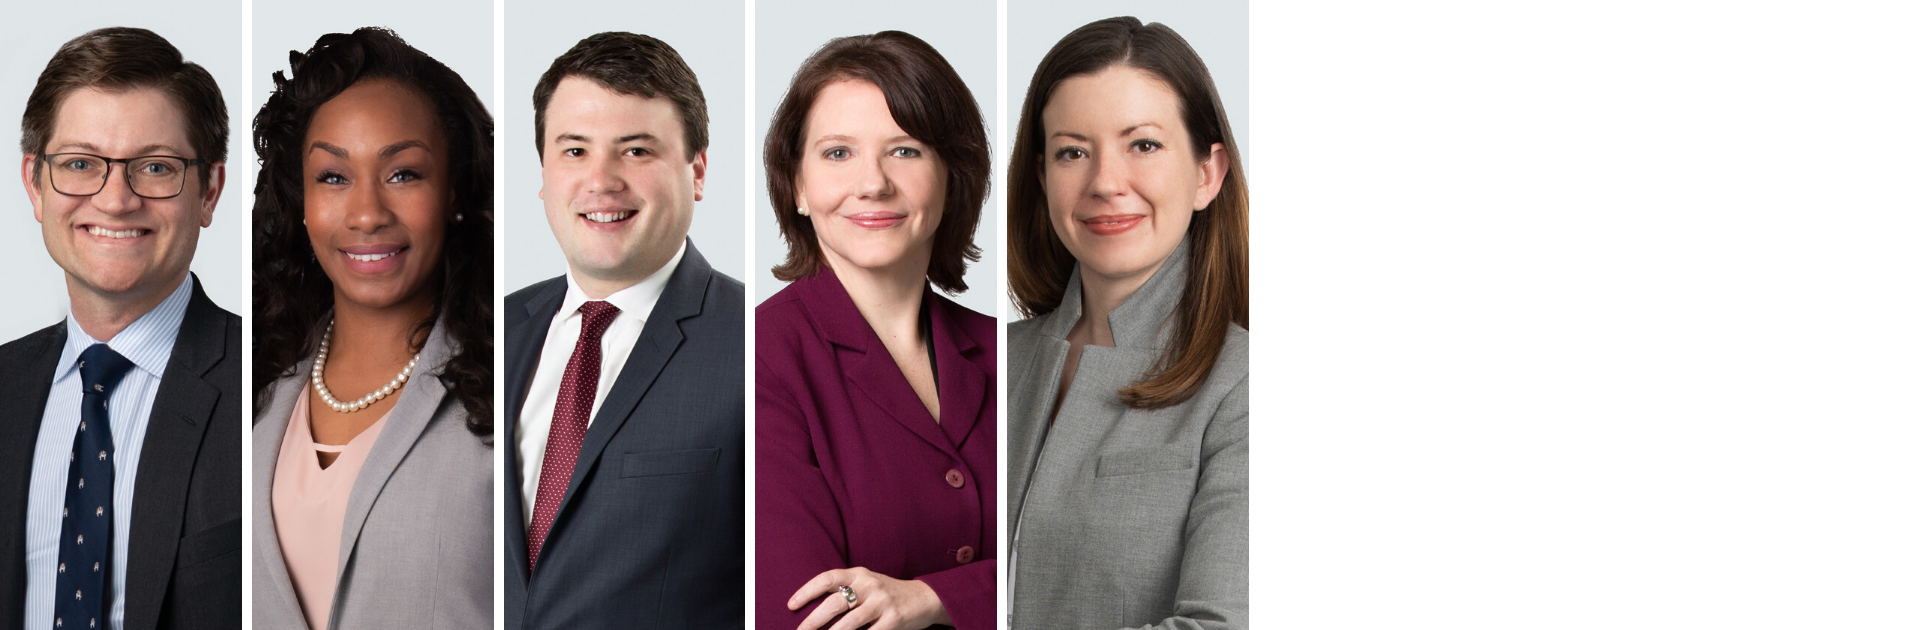 Coats Rose Adds Five Attorneys, Bolstering Key Practices in Houston, Austin, Dallas and New Orleans Offices